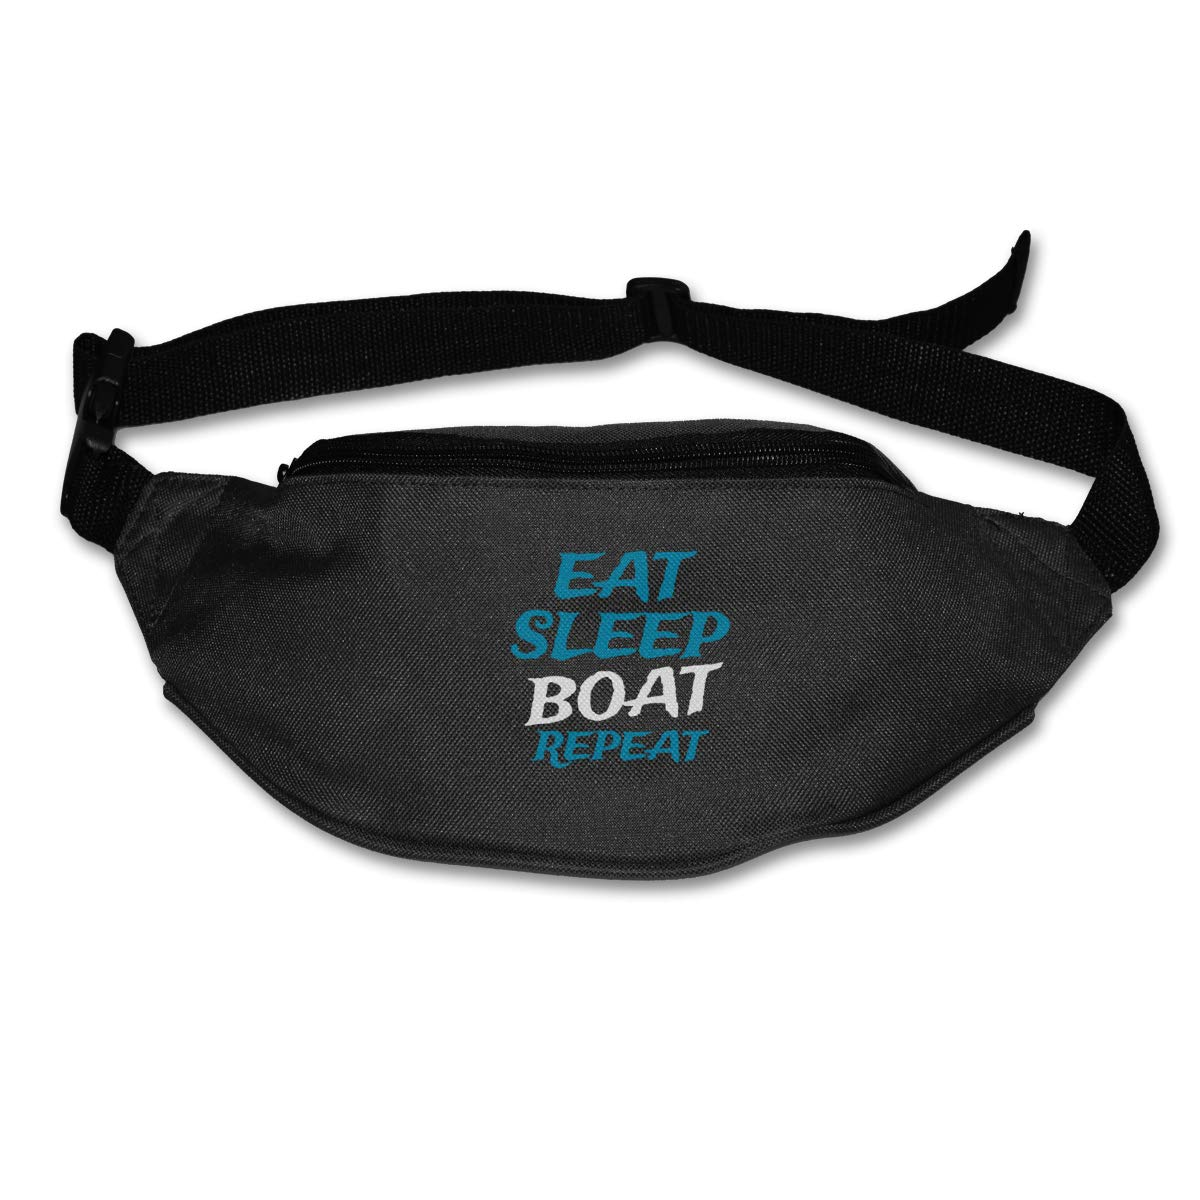 Eat Sleep Boat Repeat Sport Waist Pack Fanny Pack Adjustable For Hike